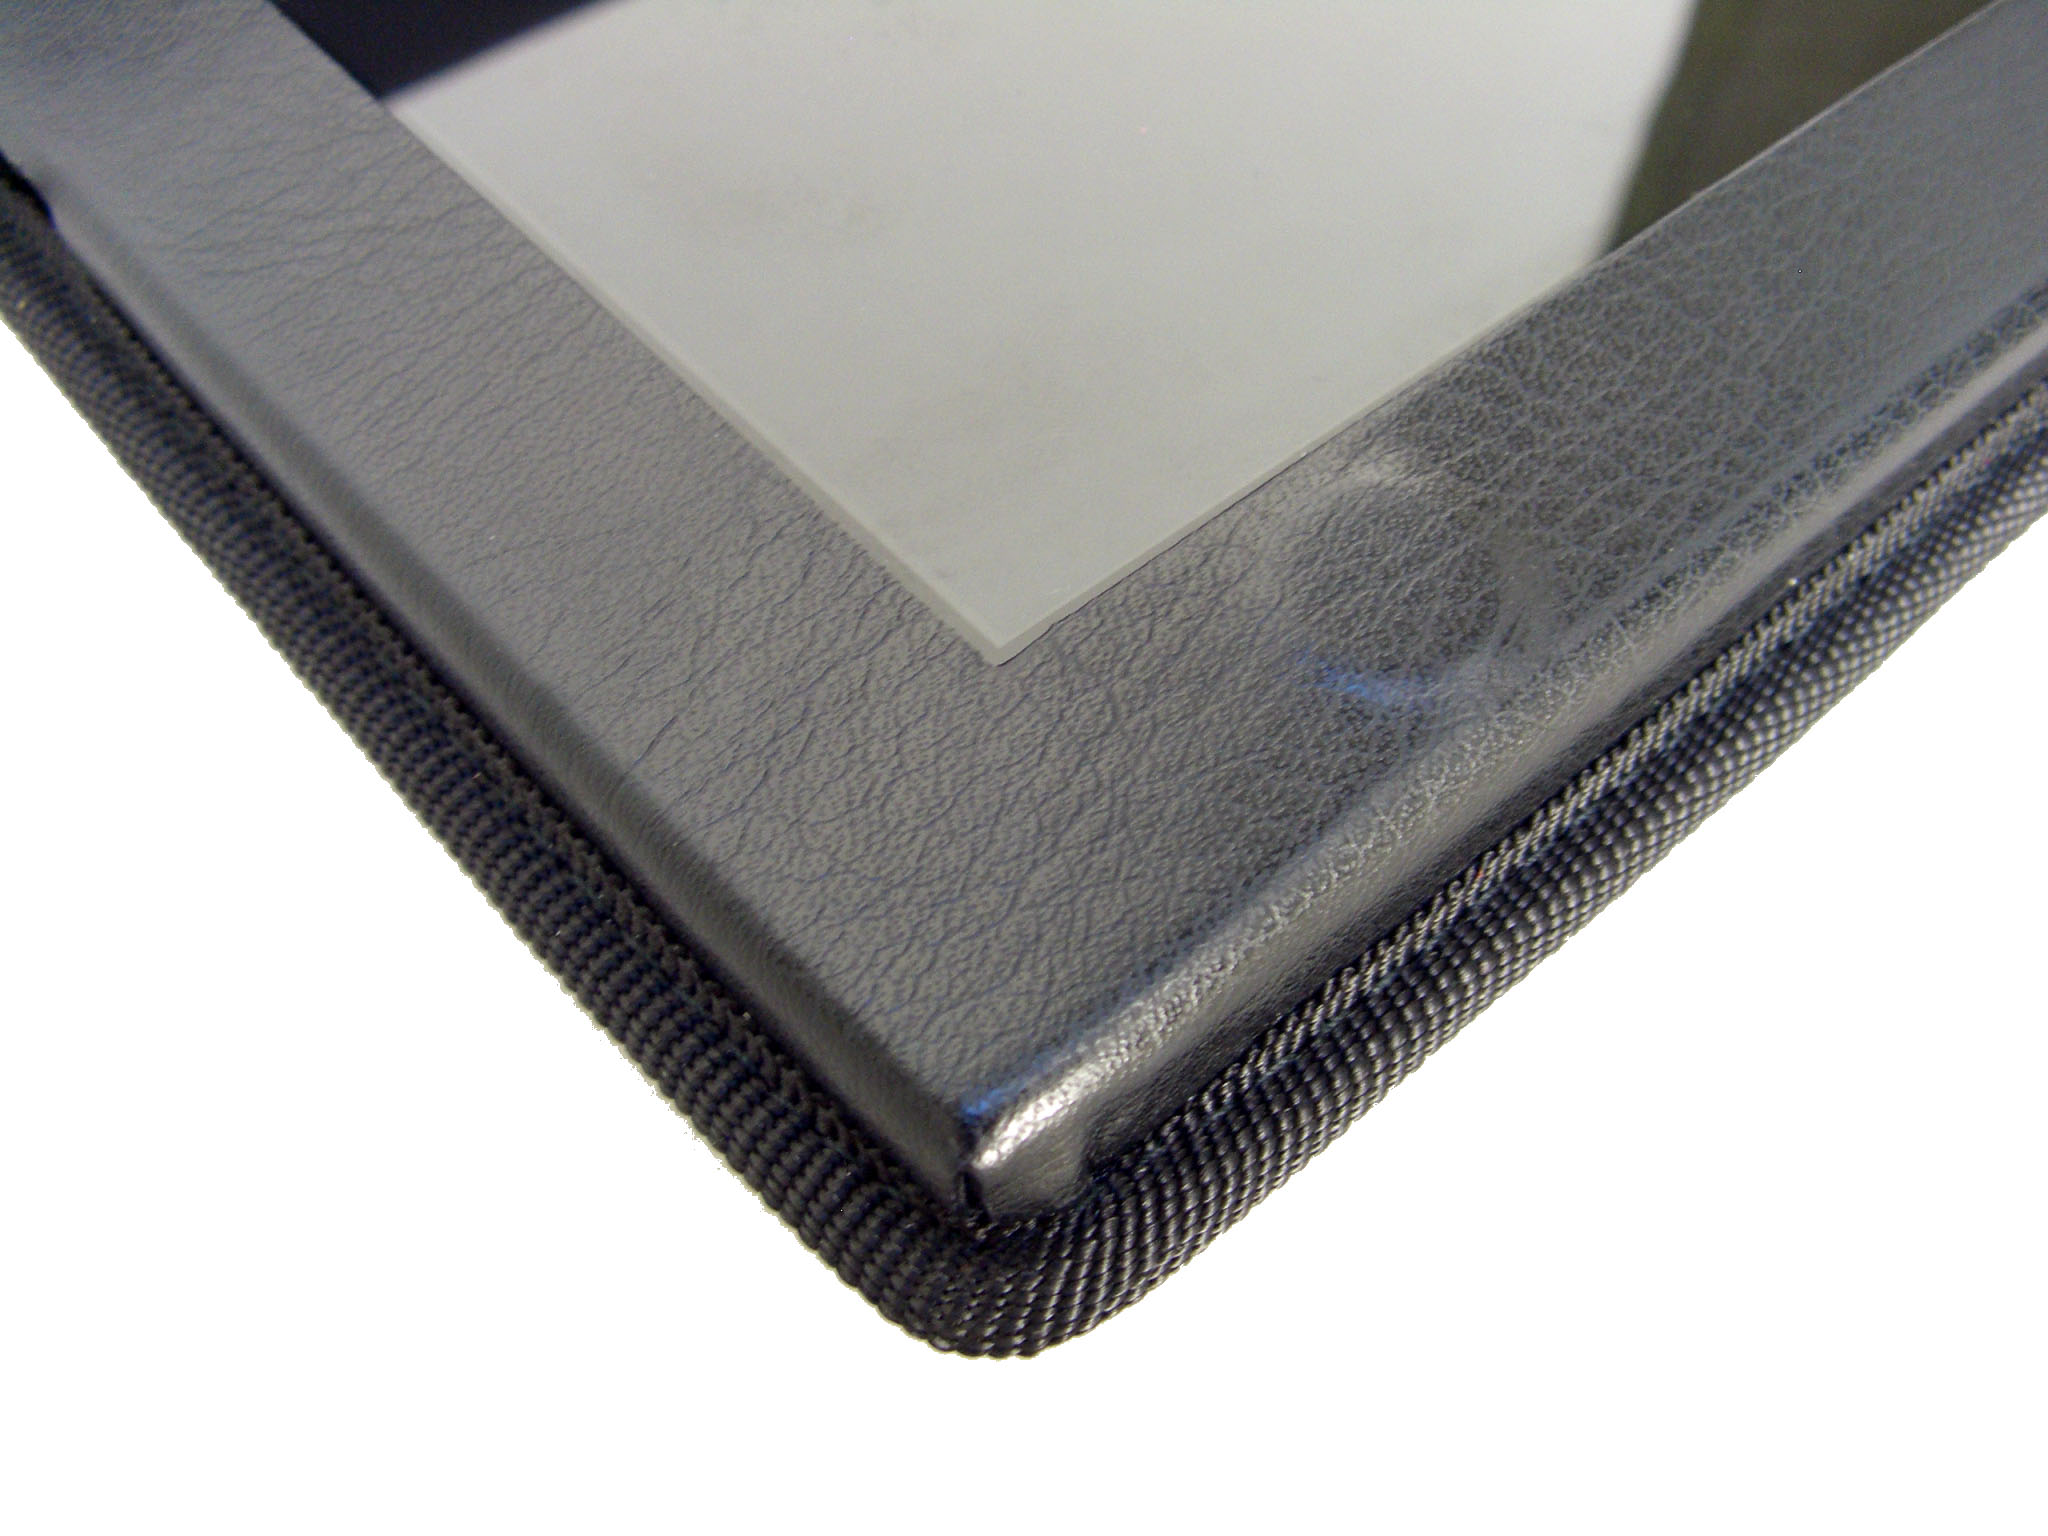 Lenovo ThinkPad Helix Tablet Case - Melgar Tailored cases for tablets